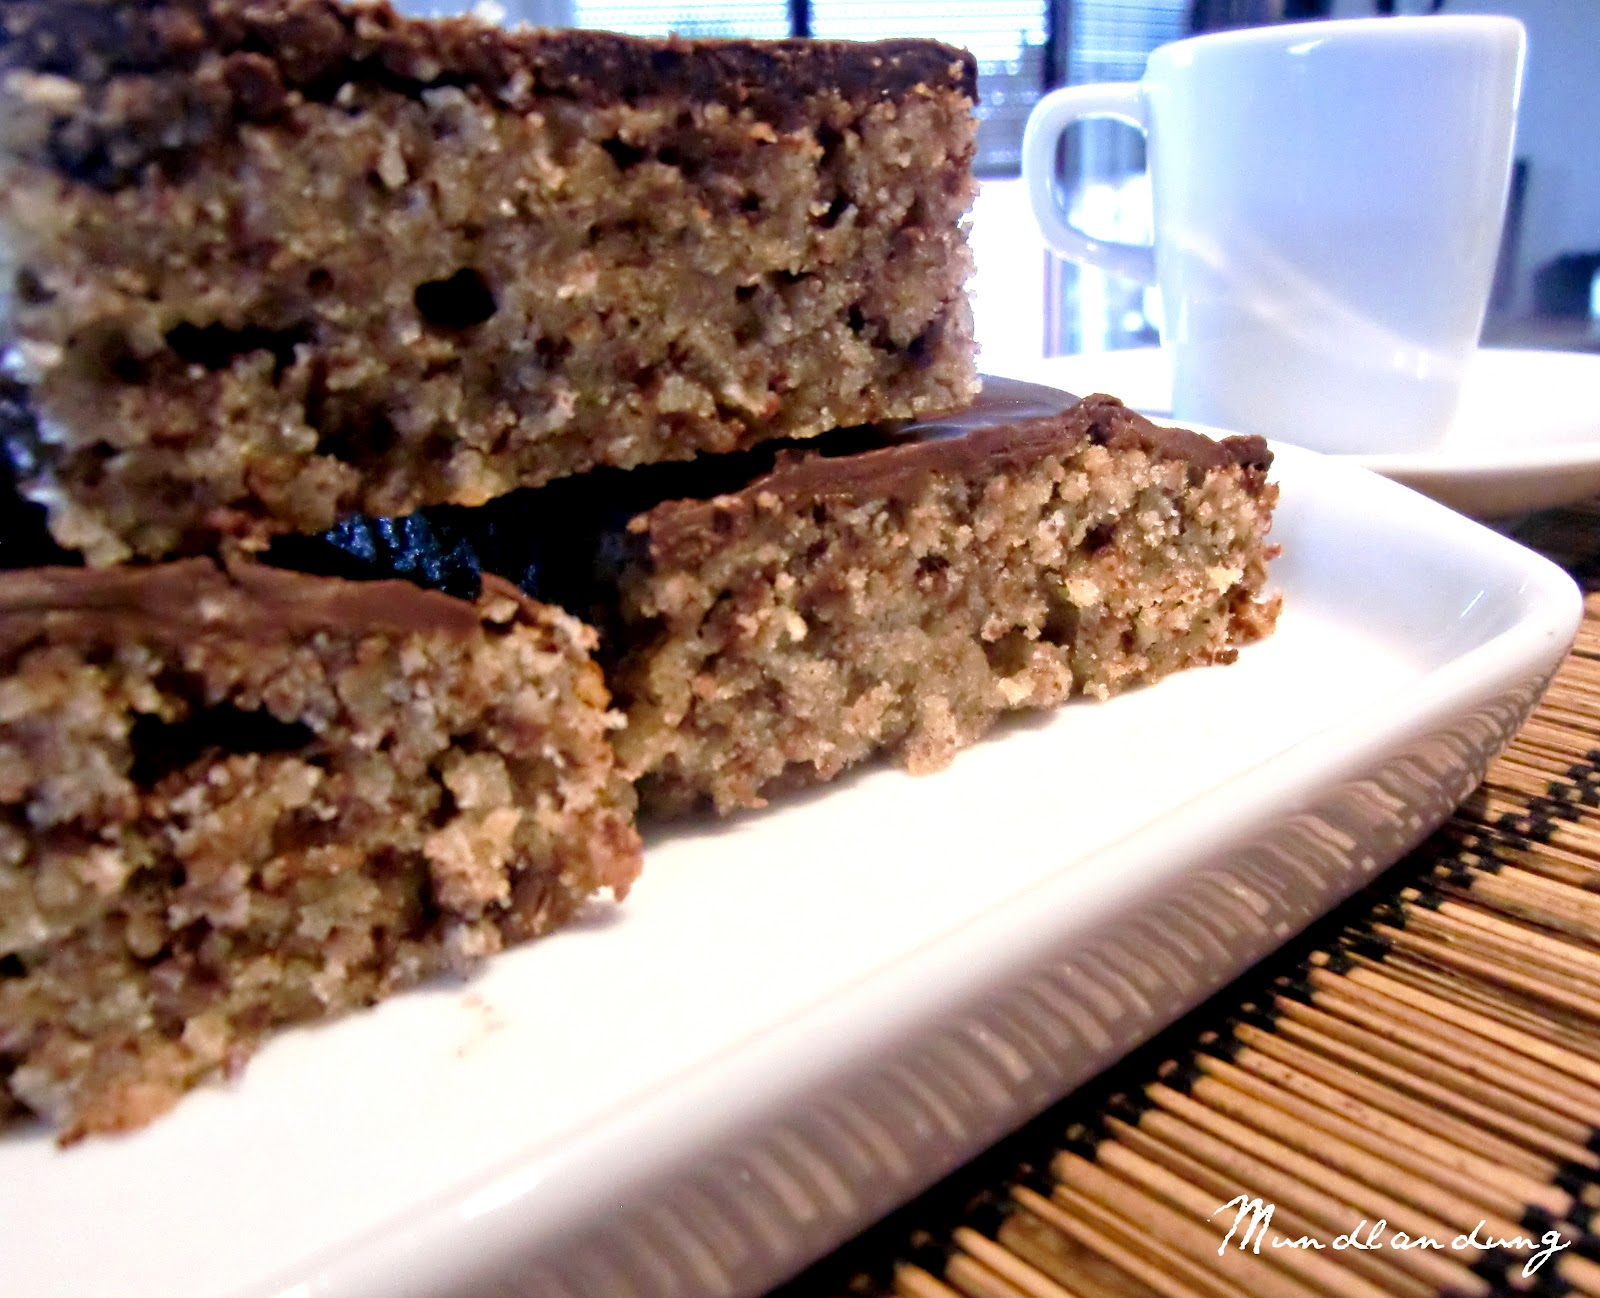 Mundlandung Chocolate Nut Bars